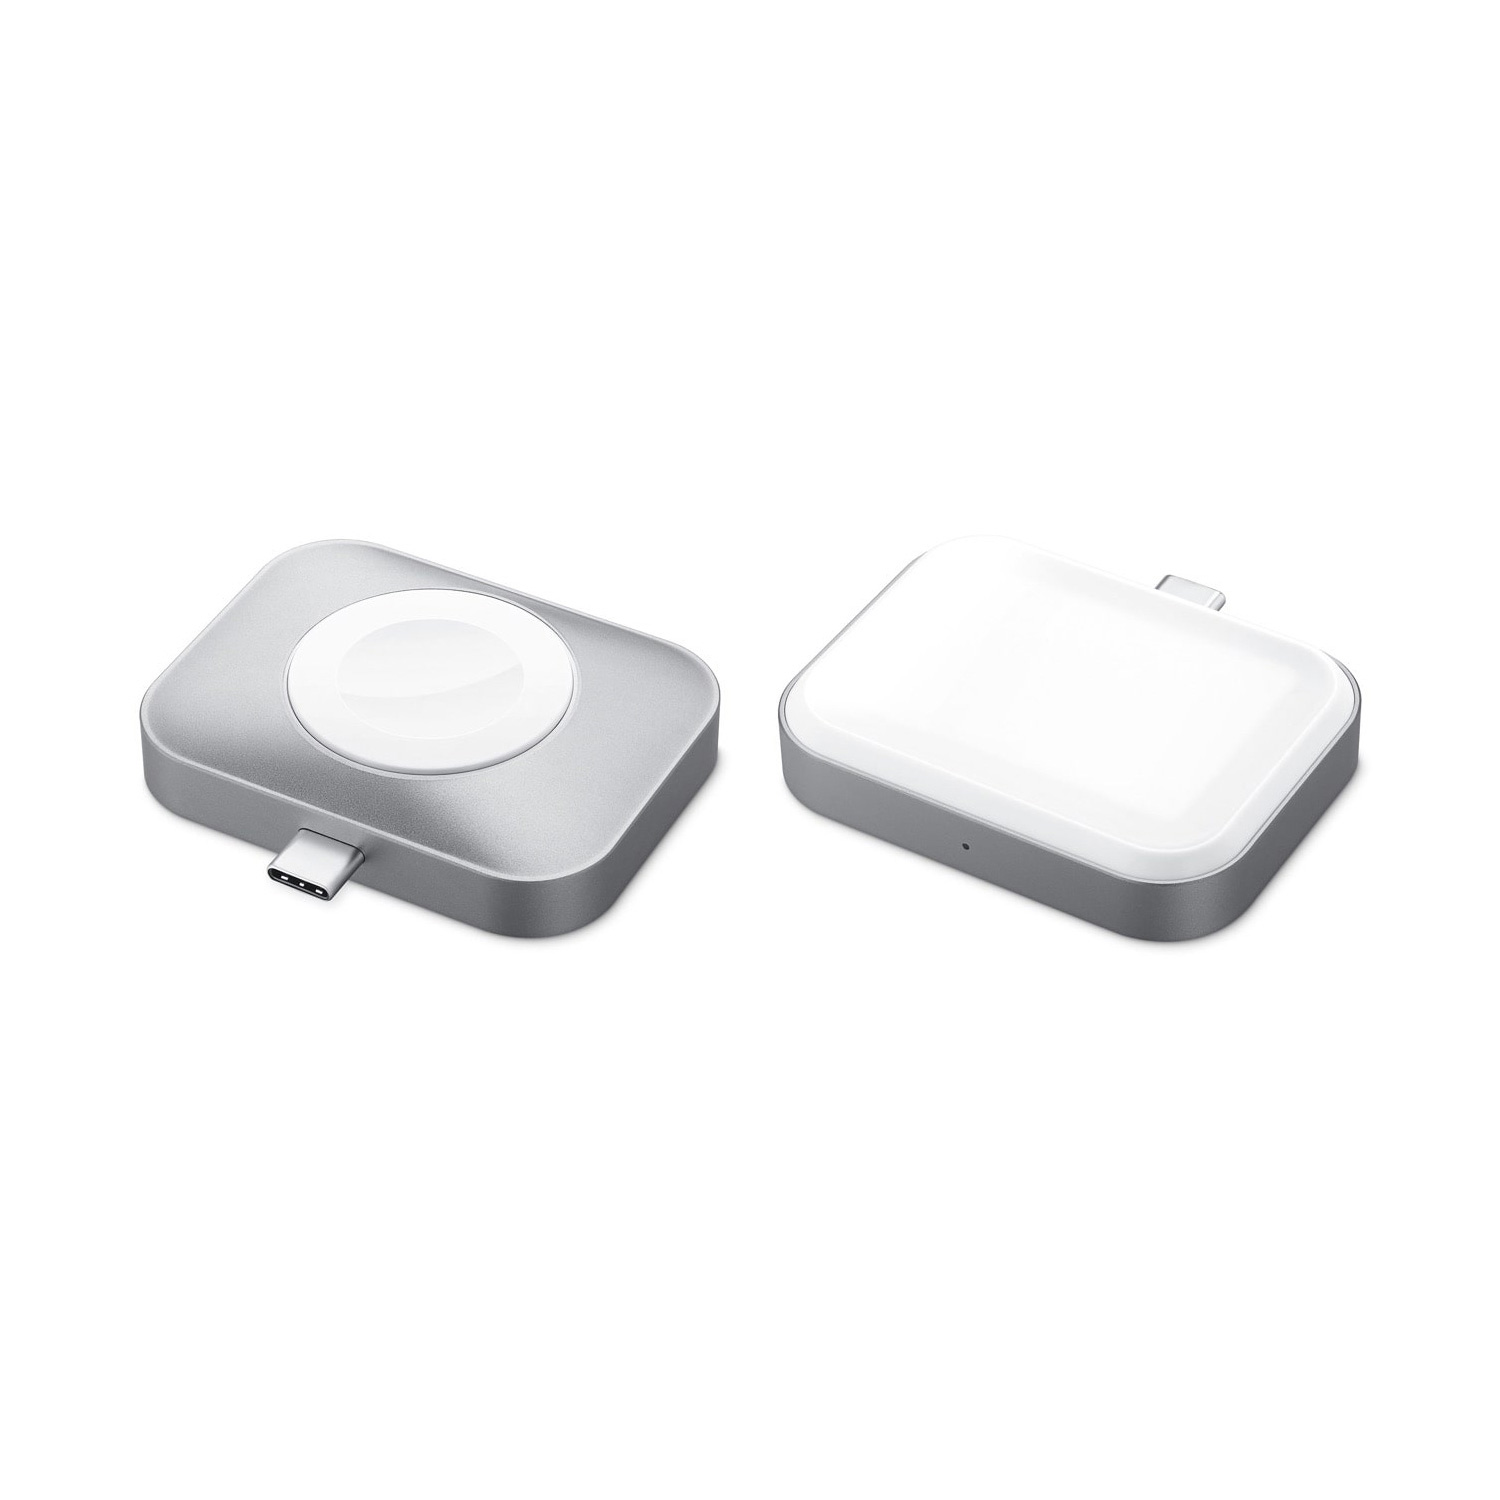 Satechi USB-C Watch AirPods Charger